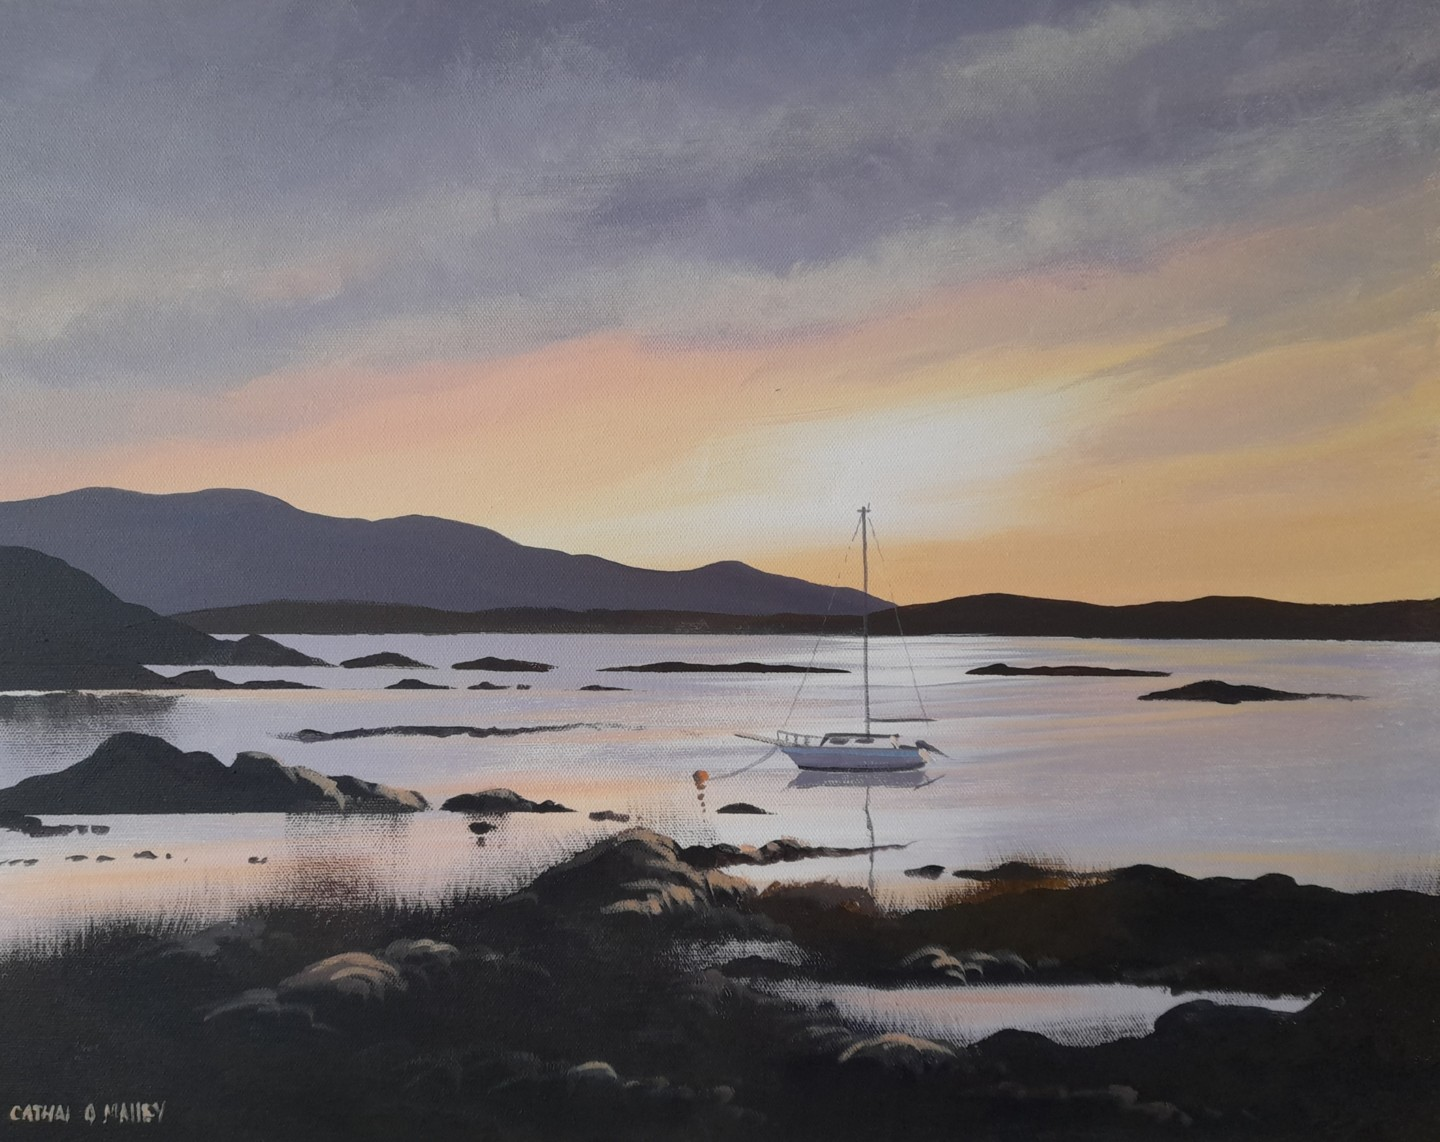 Cathal O Malley - Glynsk boat connemara